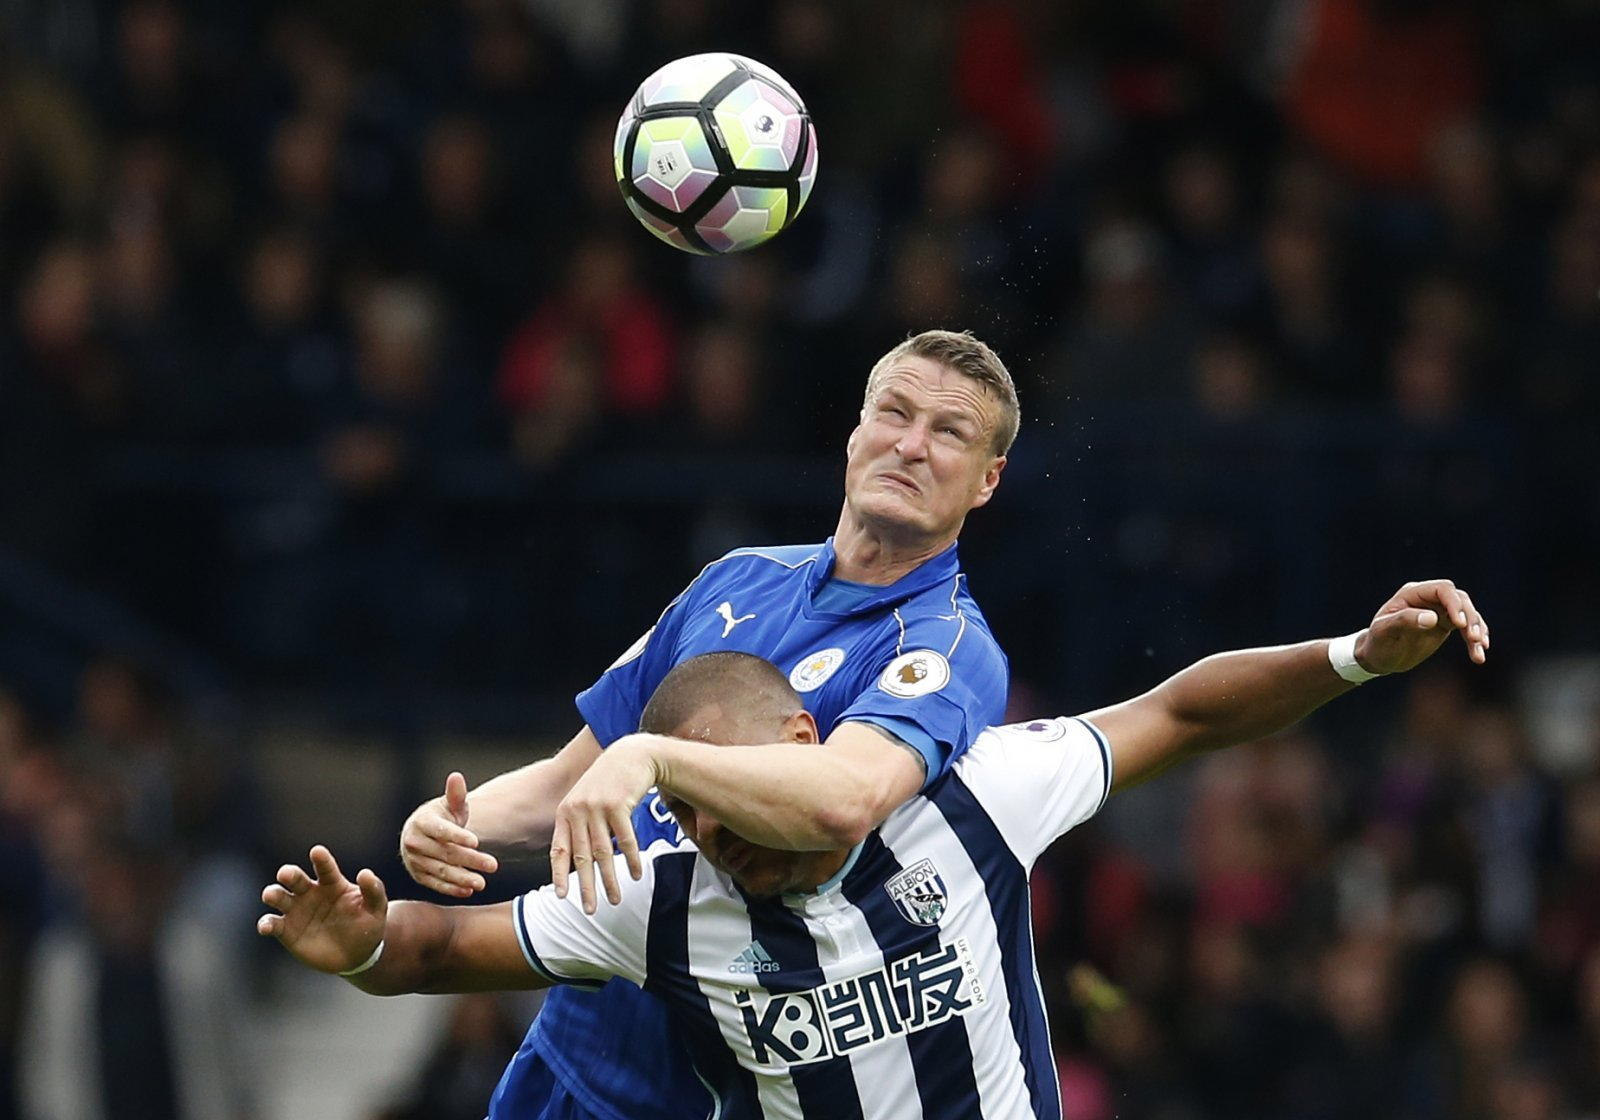 Leeds should bolster their defensive options by signing Robert Huth on free transfer